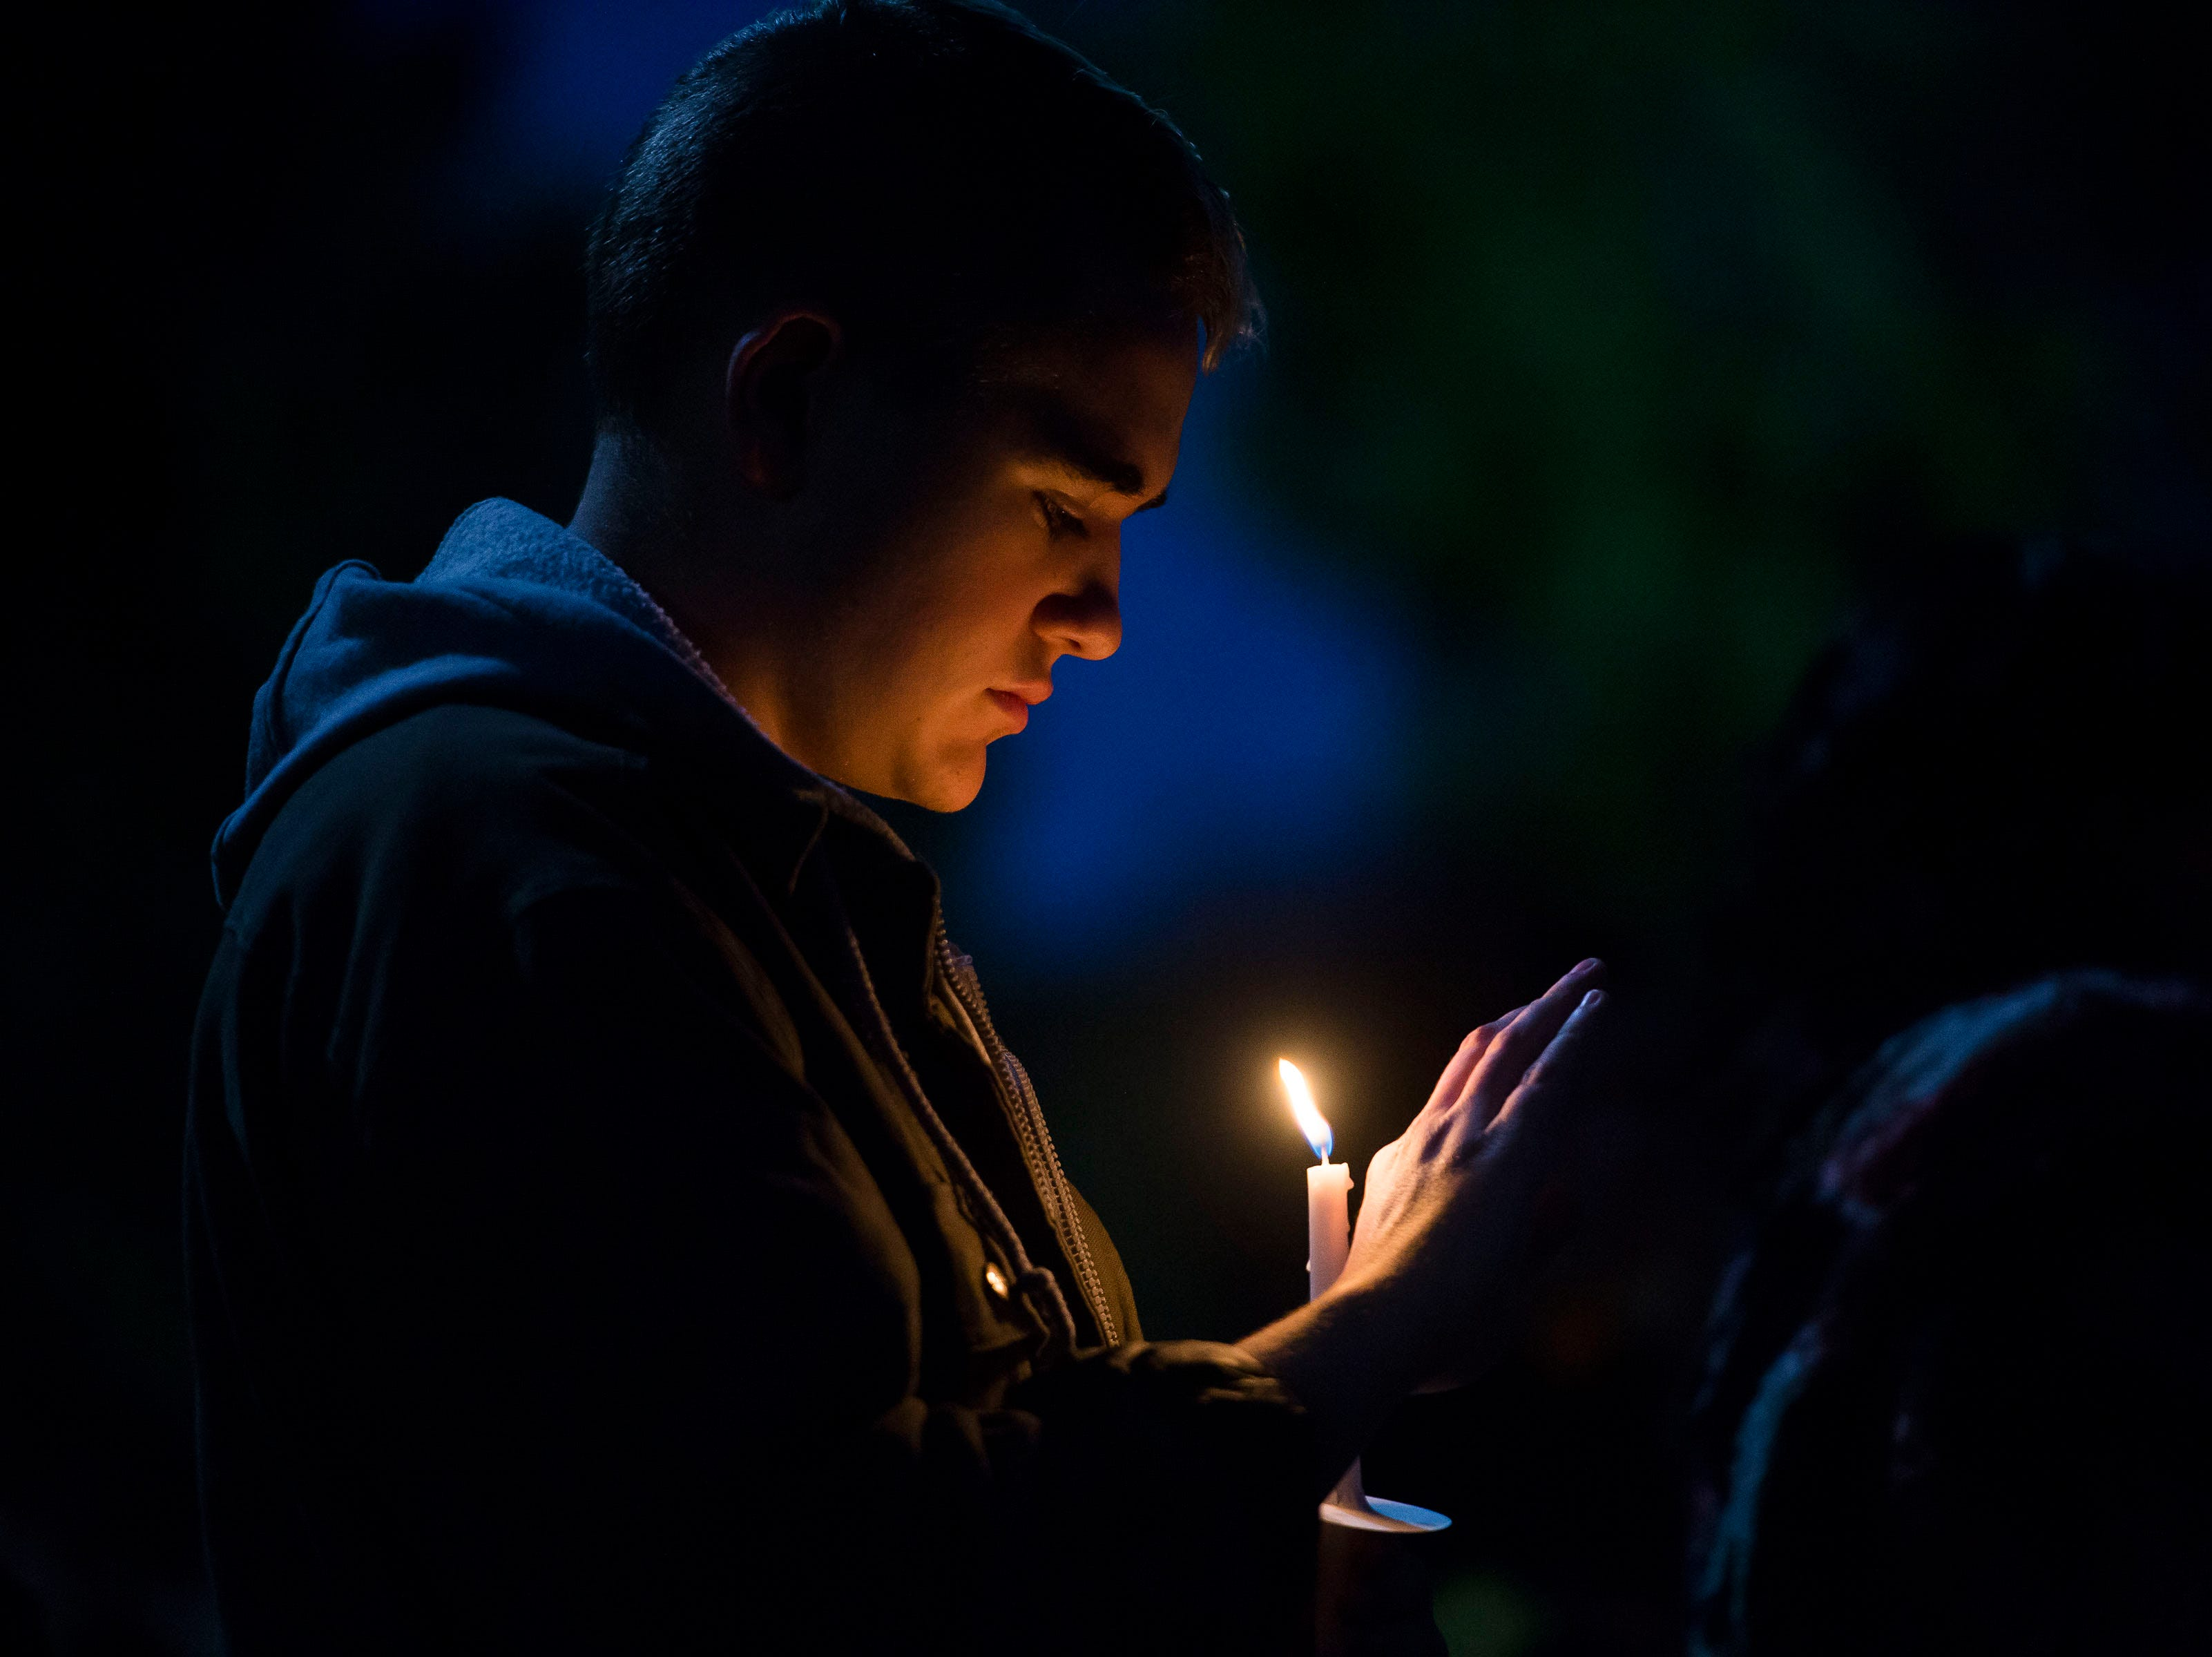 Lee Gauntlett holds a candle during a candlelight vigil on the 20th anniversary of Matthew Shepard's death on Friday, Oct. 12, 2018, at Prexy's Pasture on the University of Wyoming campus in Laramie, Wyo.